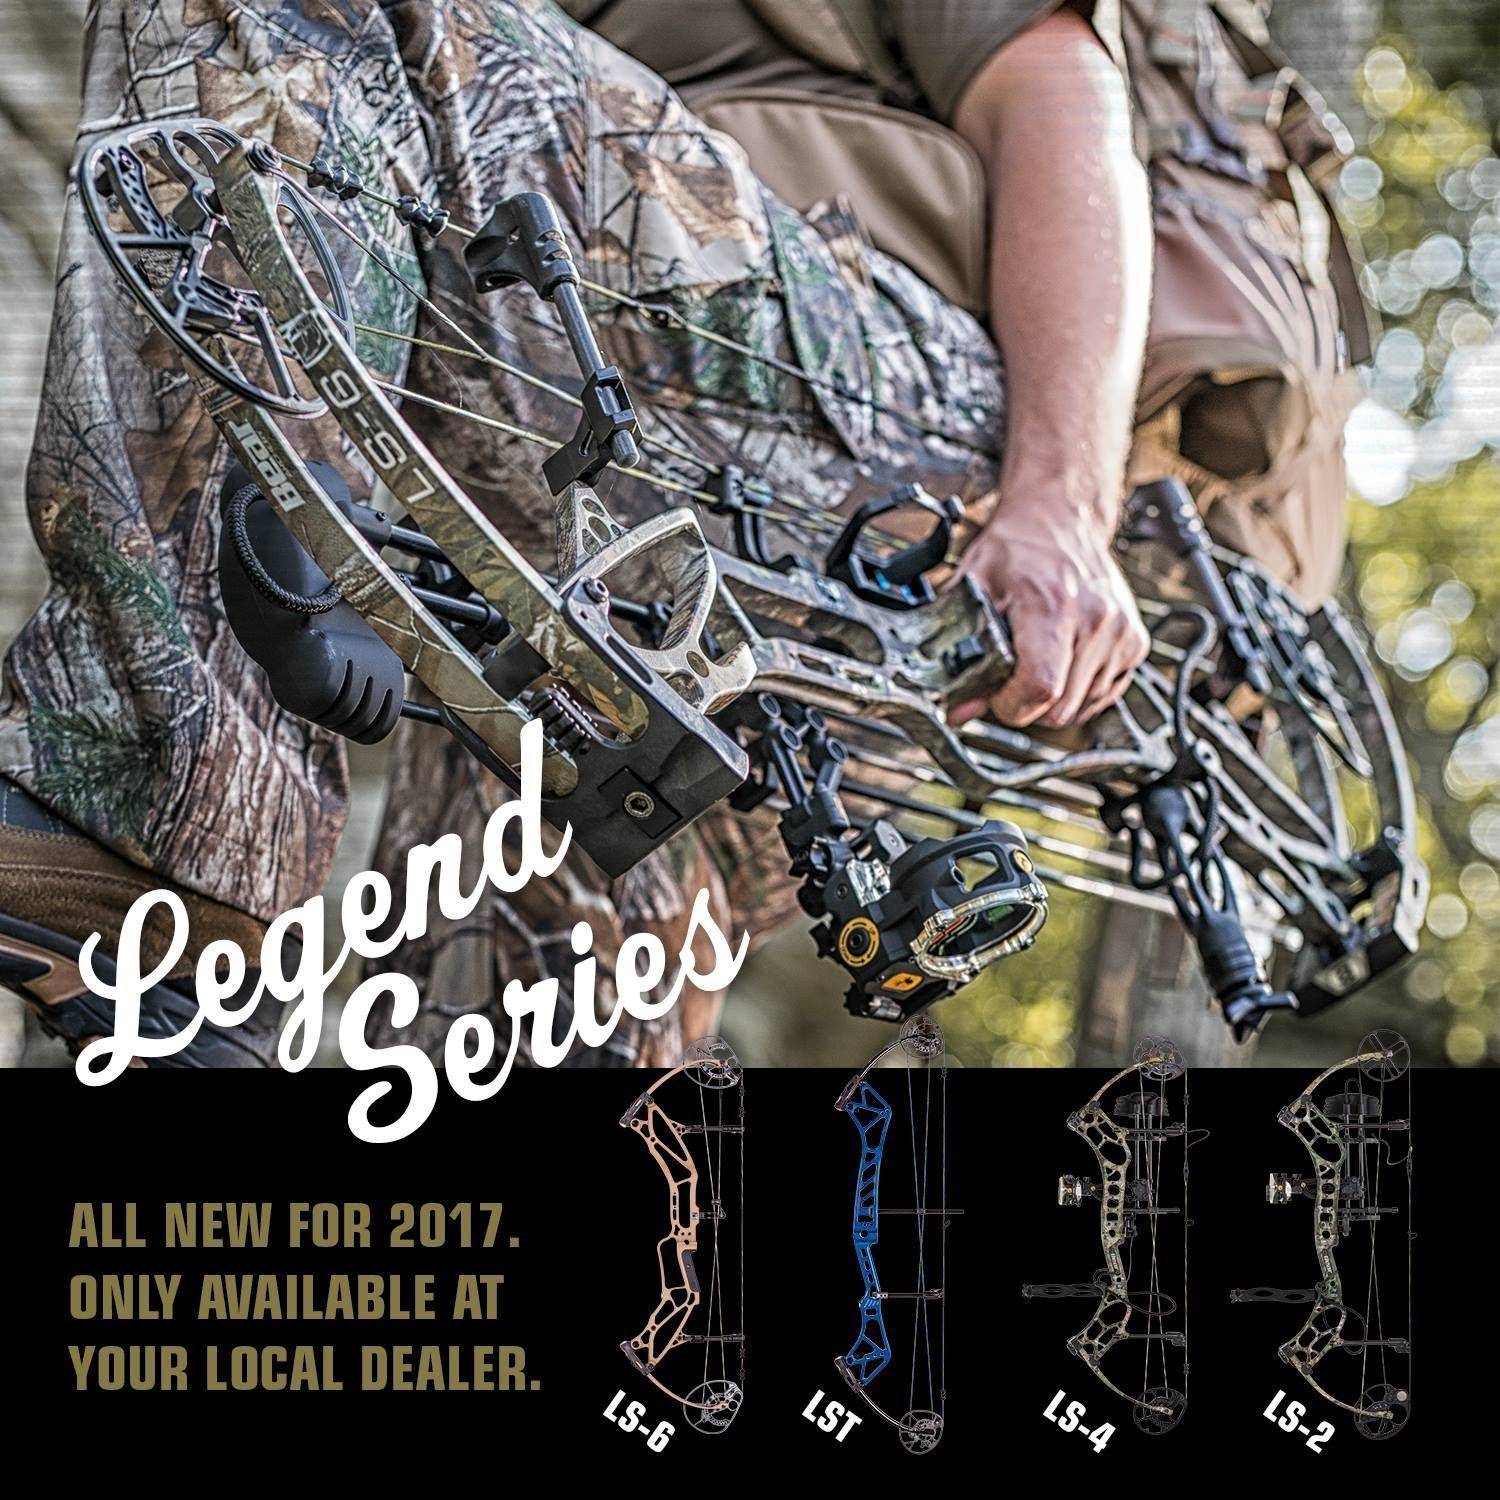 Legend Series Bear Archery Bows 2017